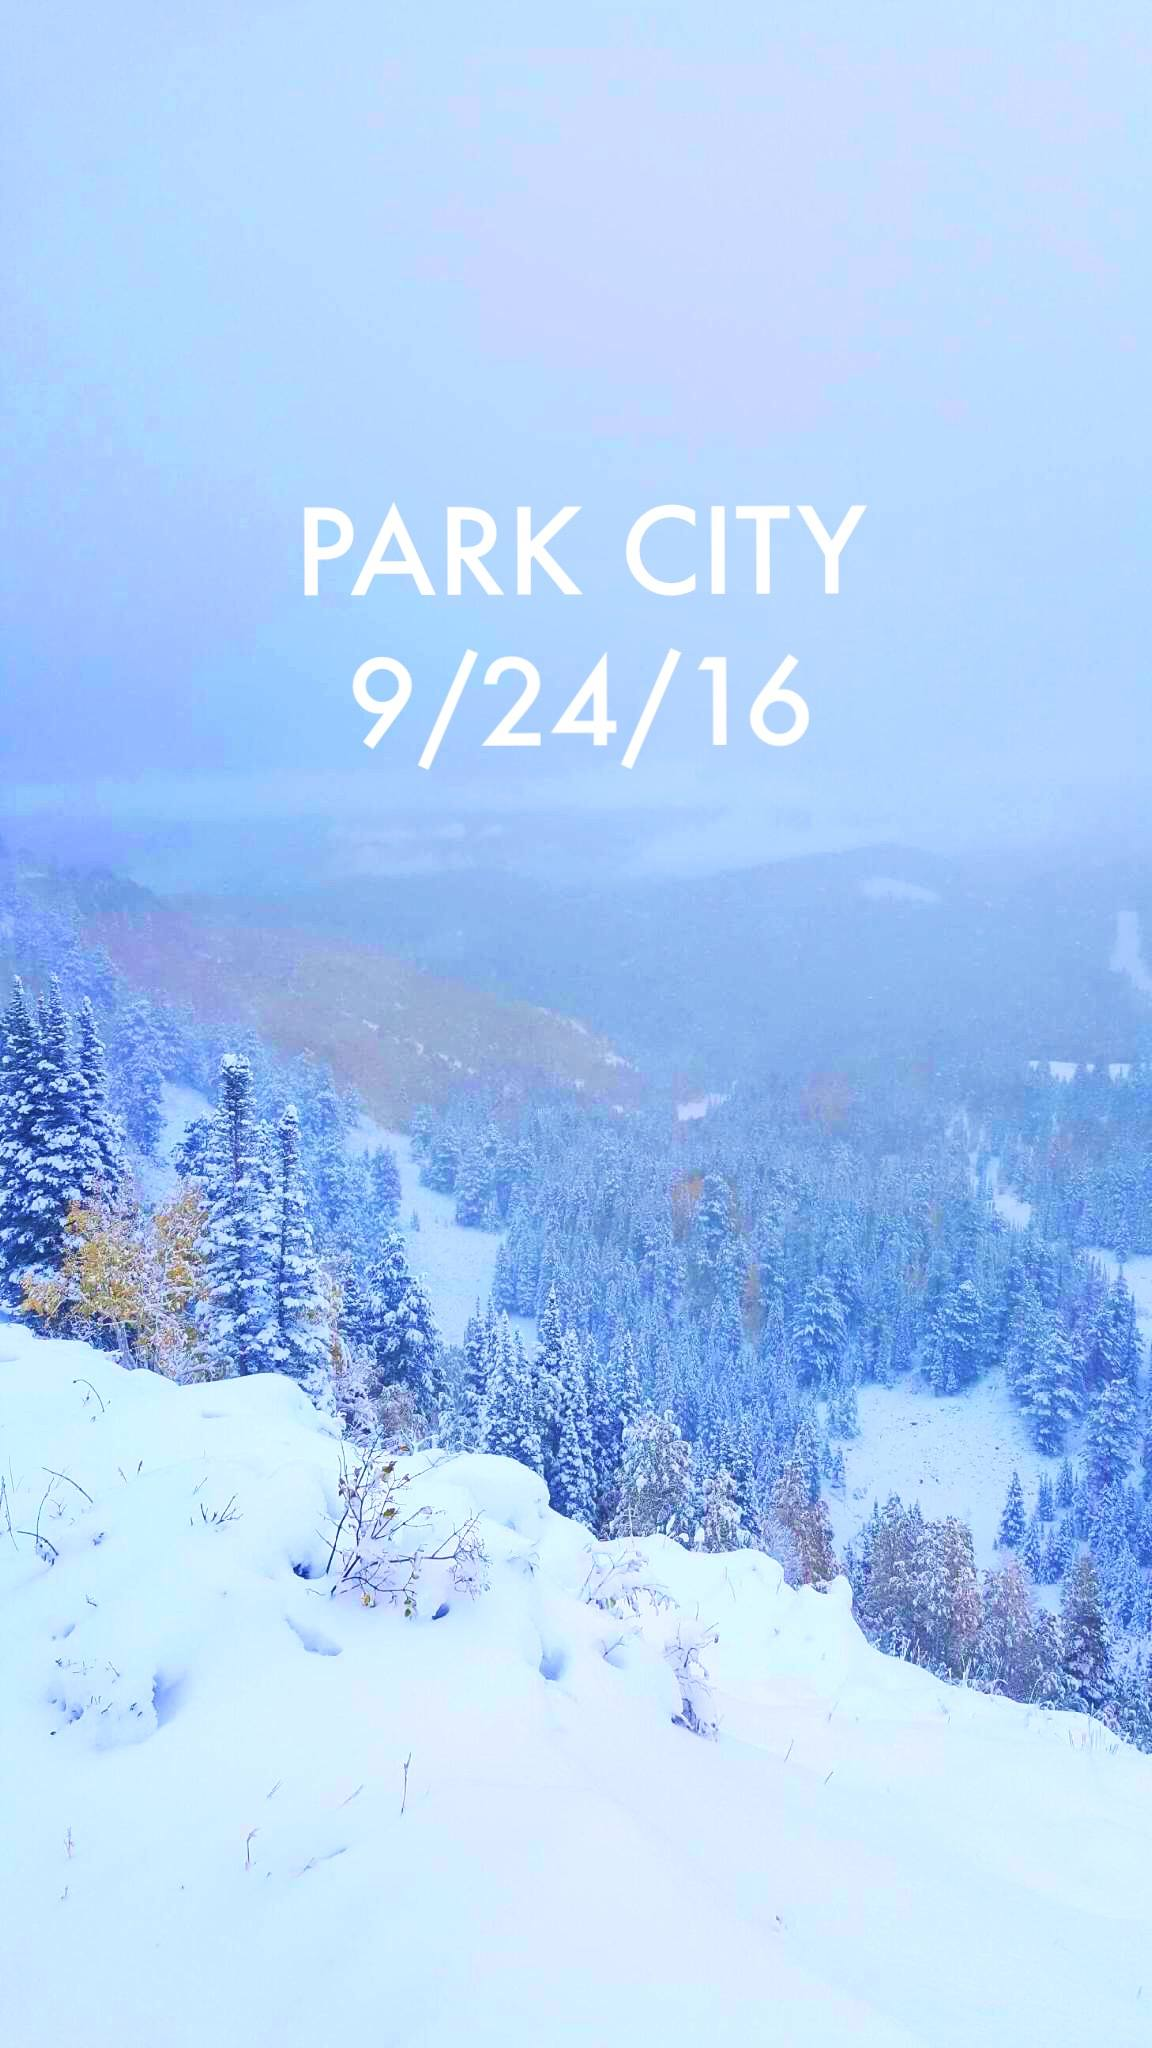 September snow in Park City